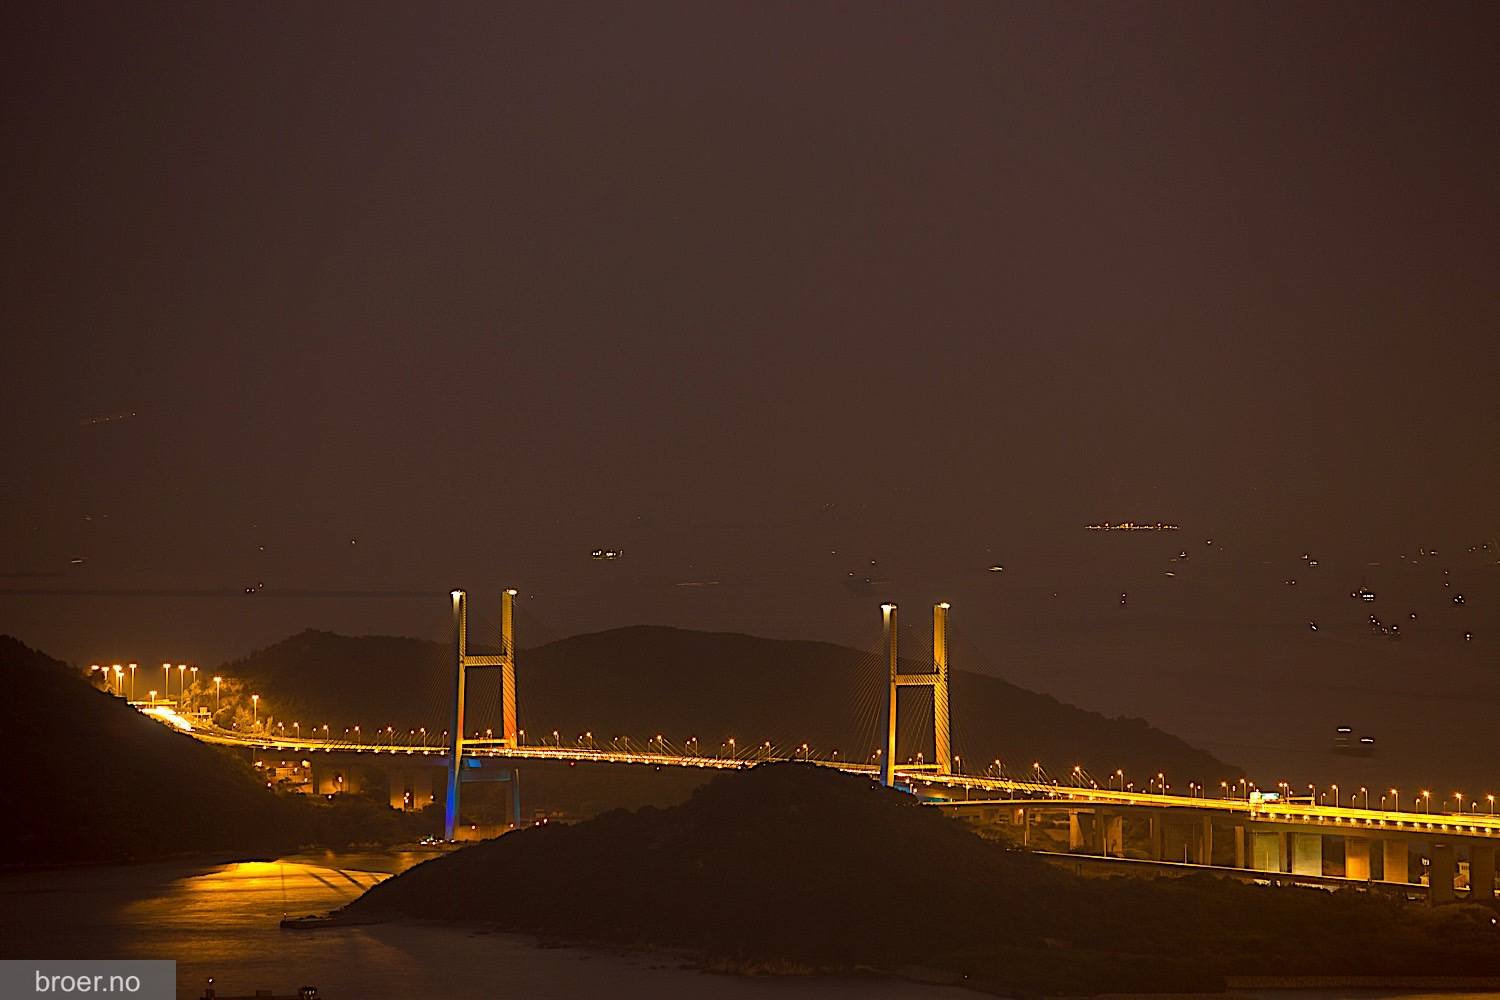 photo of Kap Shui Mun Bridge